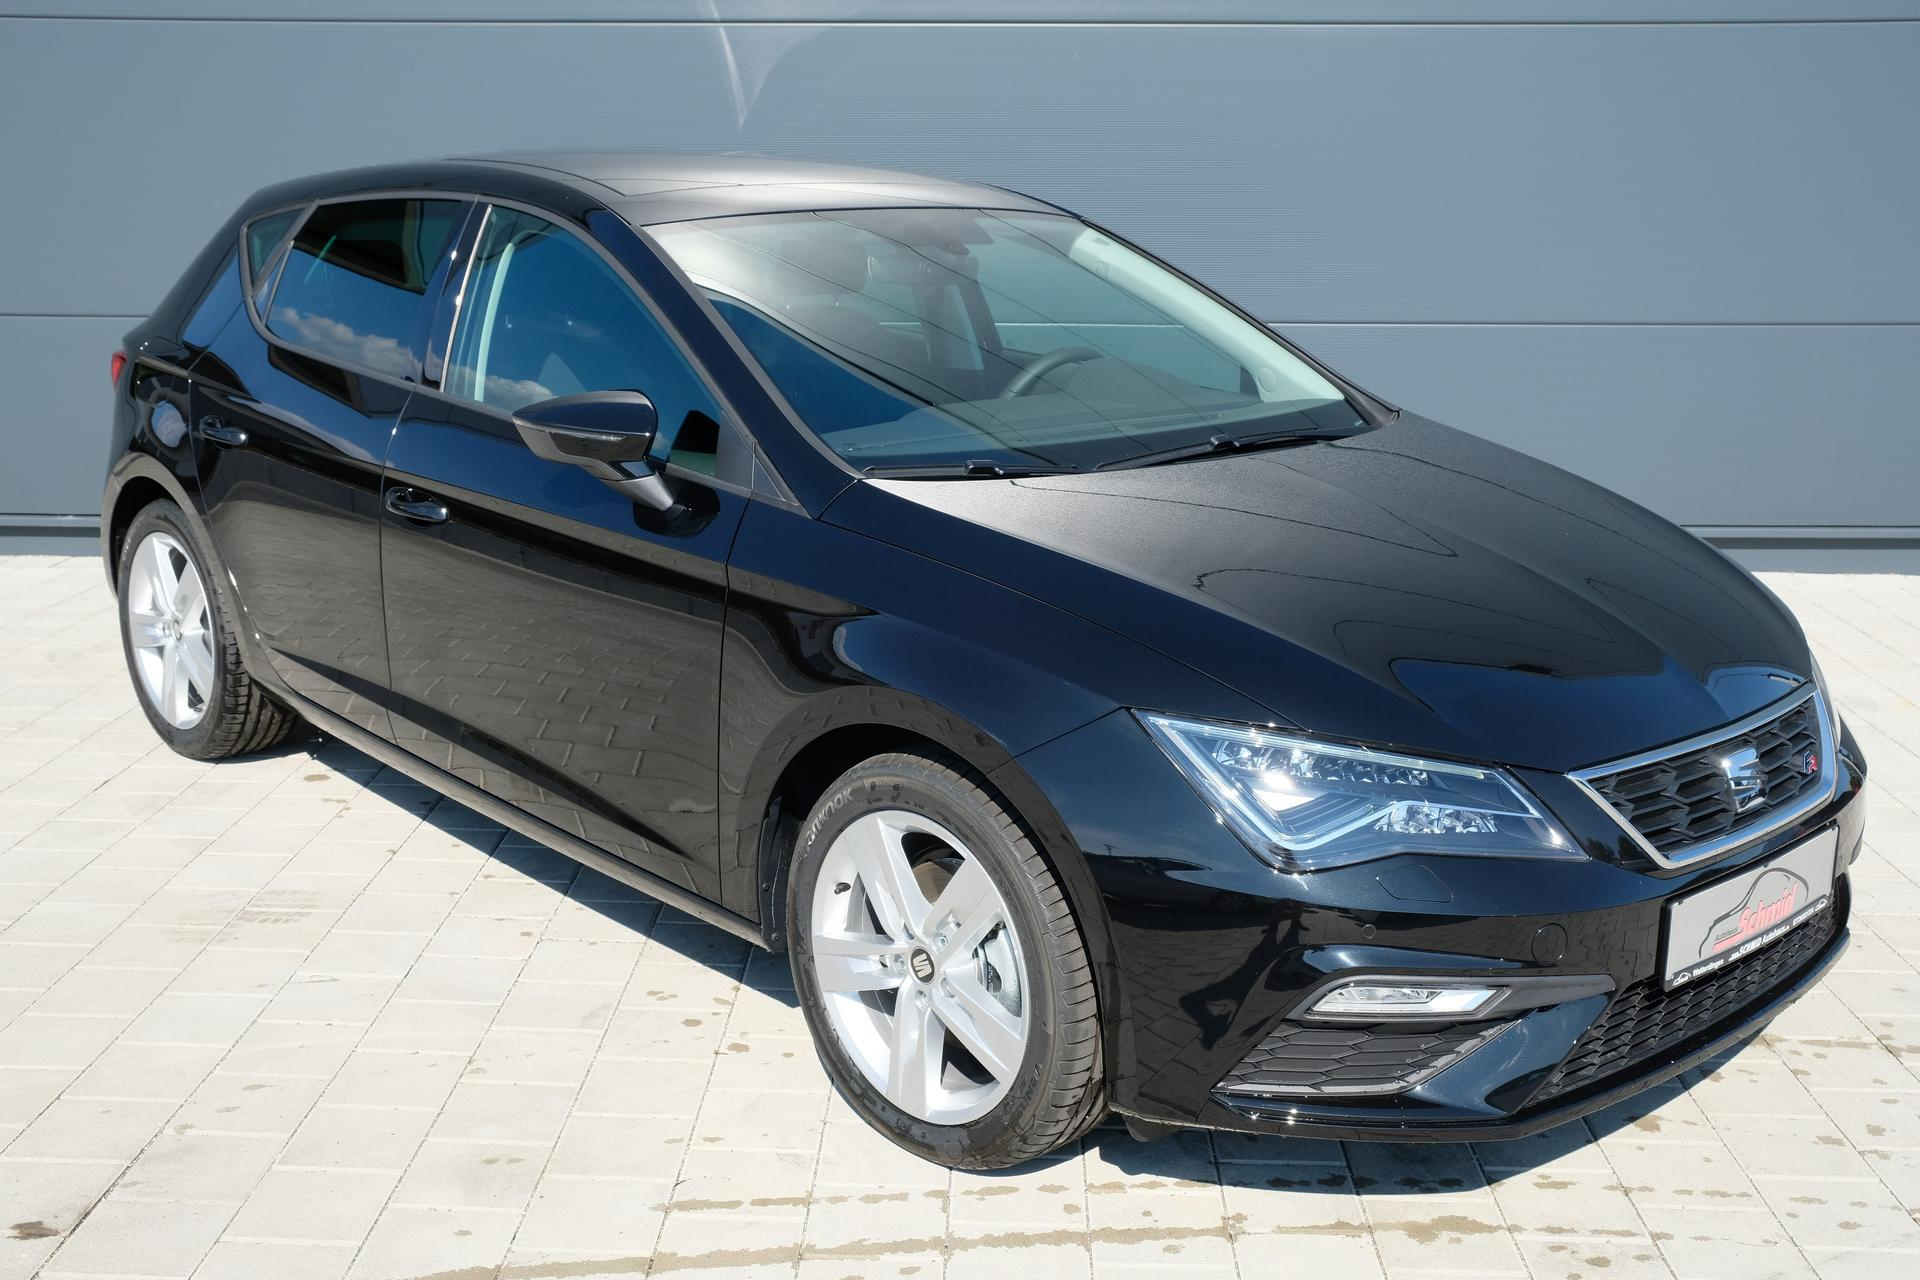 seat leon 1 4 tsi fr navi panoramadach led scheinwerfer. Black Bedroom Furniture Sets. Home Design Ideas